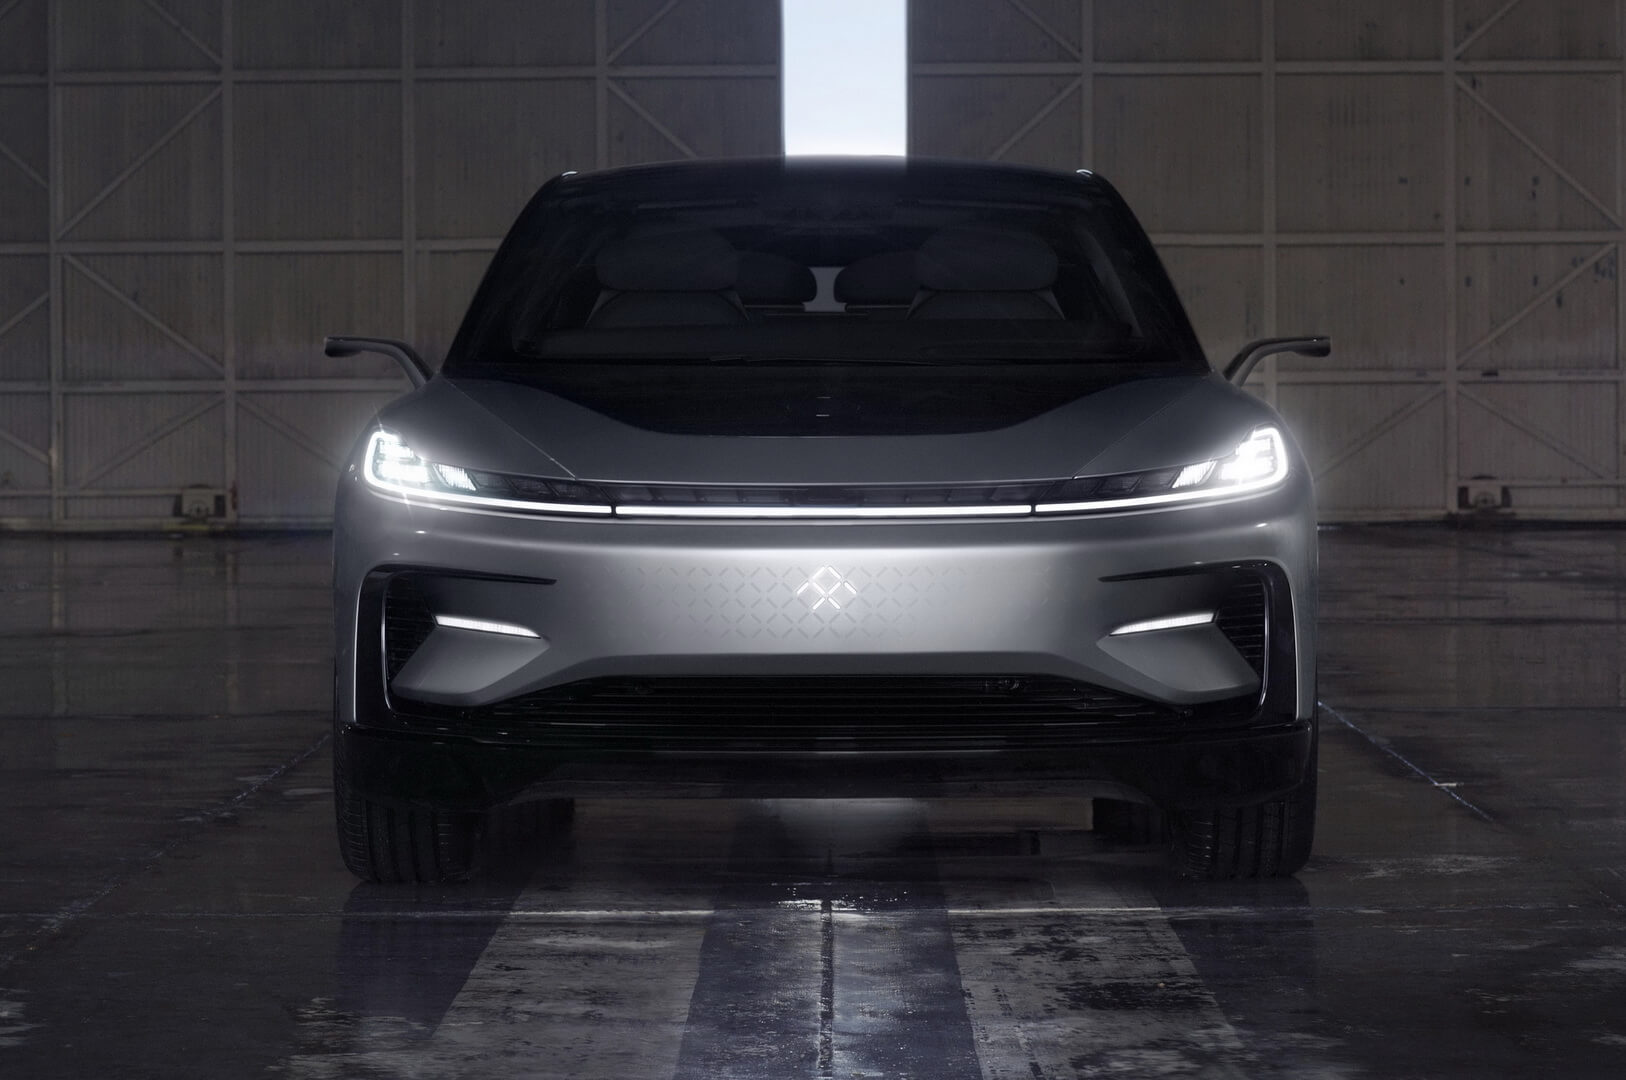 Faraday Future FF 91-exterior-4